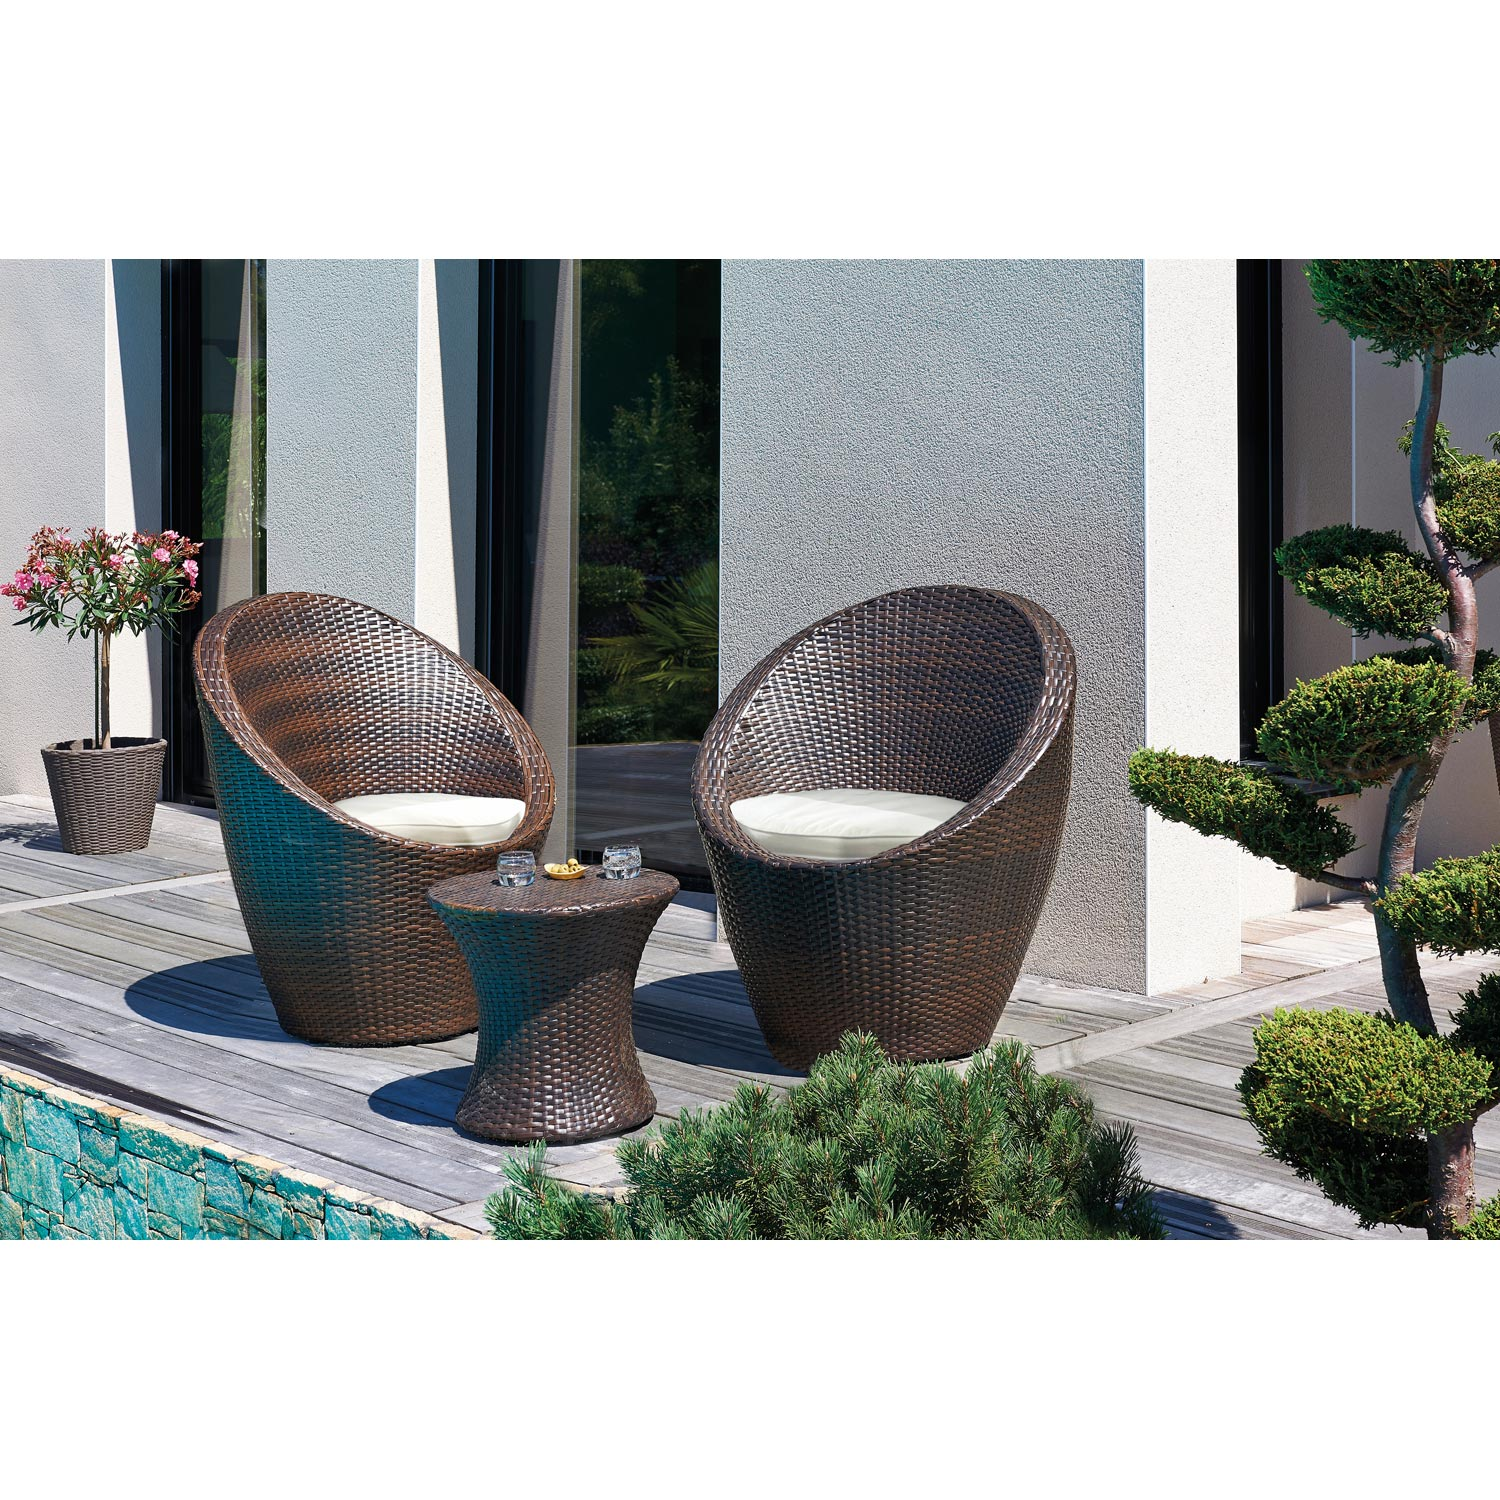 Salon bas de jardin totem r sine tress e chocolat 1 table 2 fauteuils leroy merlin Salon de jardin bas tresse